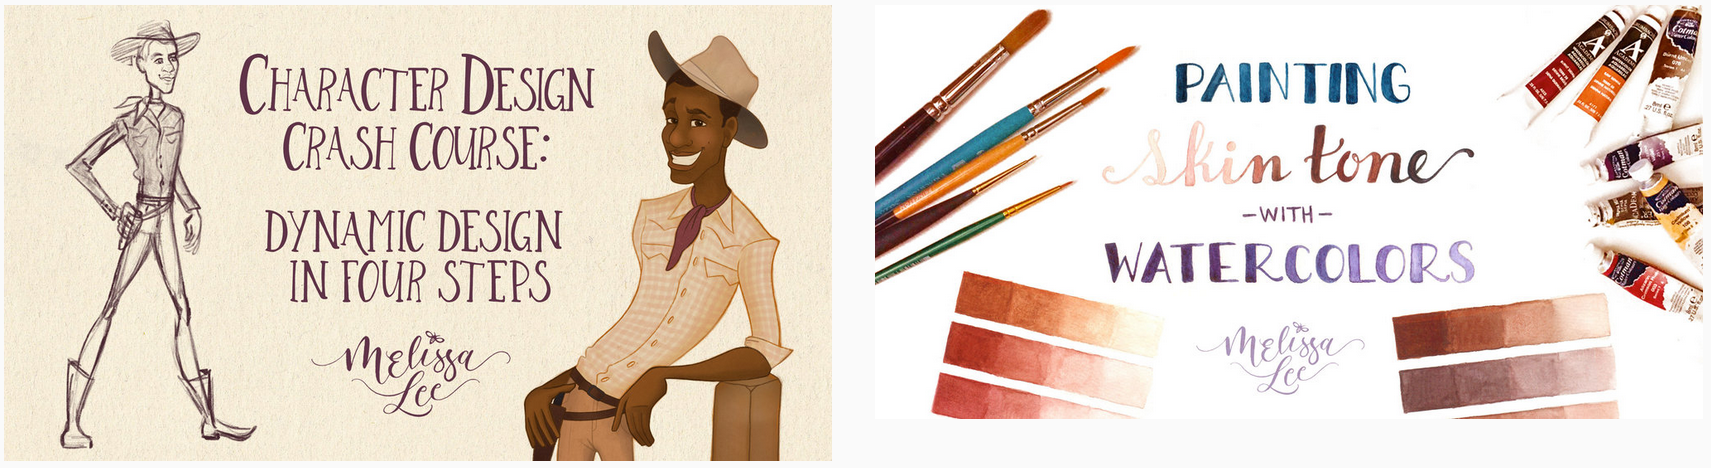 Dynamic Design in Four Steps  and  Painting Skin Tone with Watercolors  are the two classes I've contributed to the bundle.